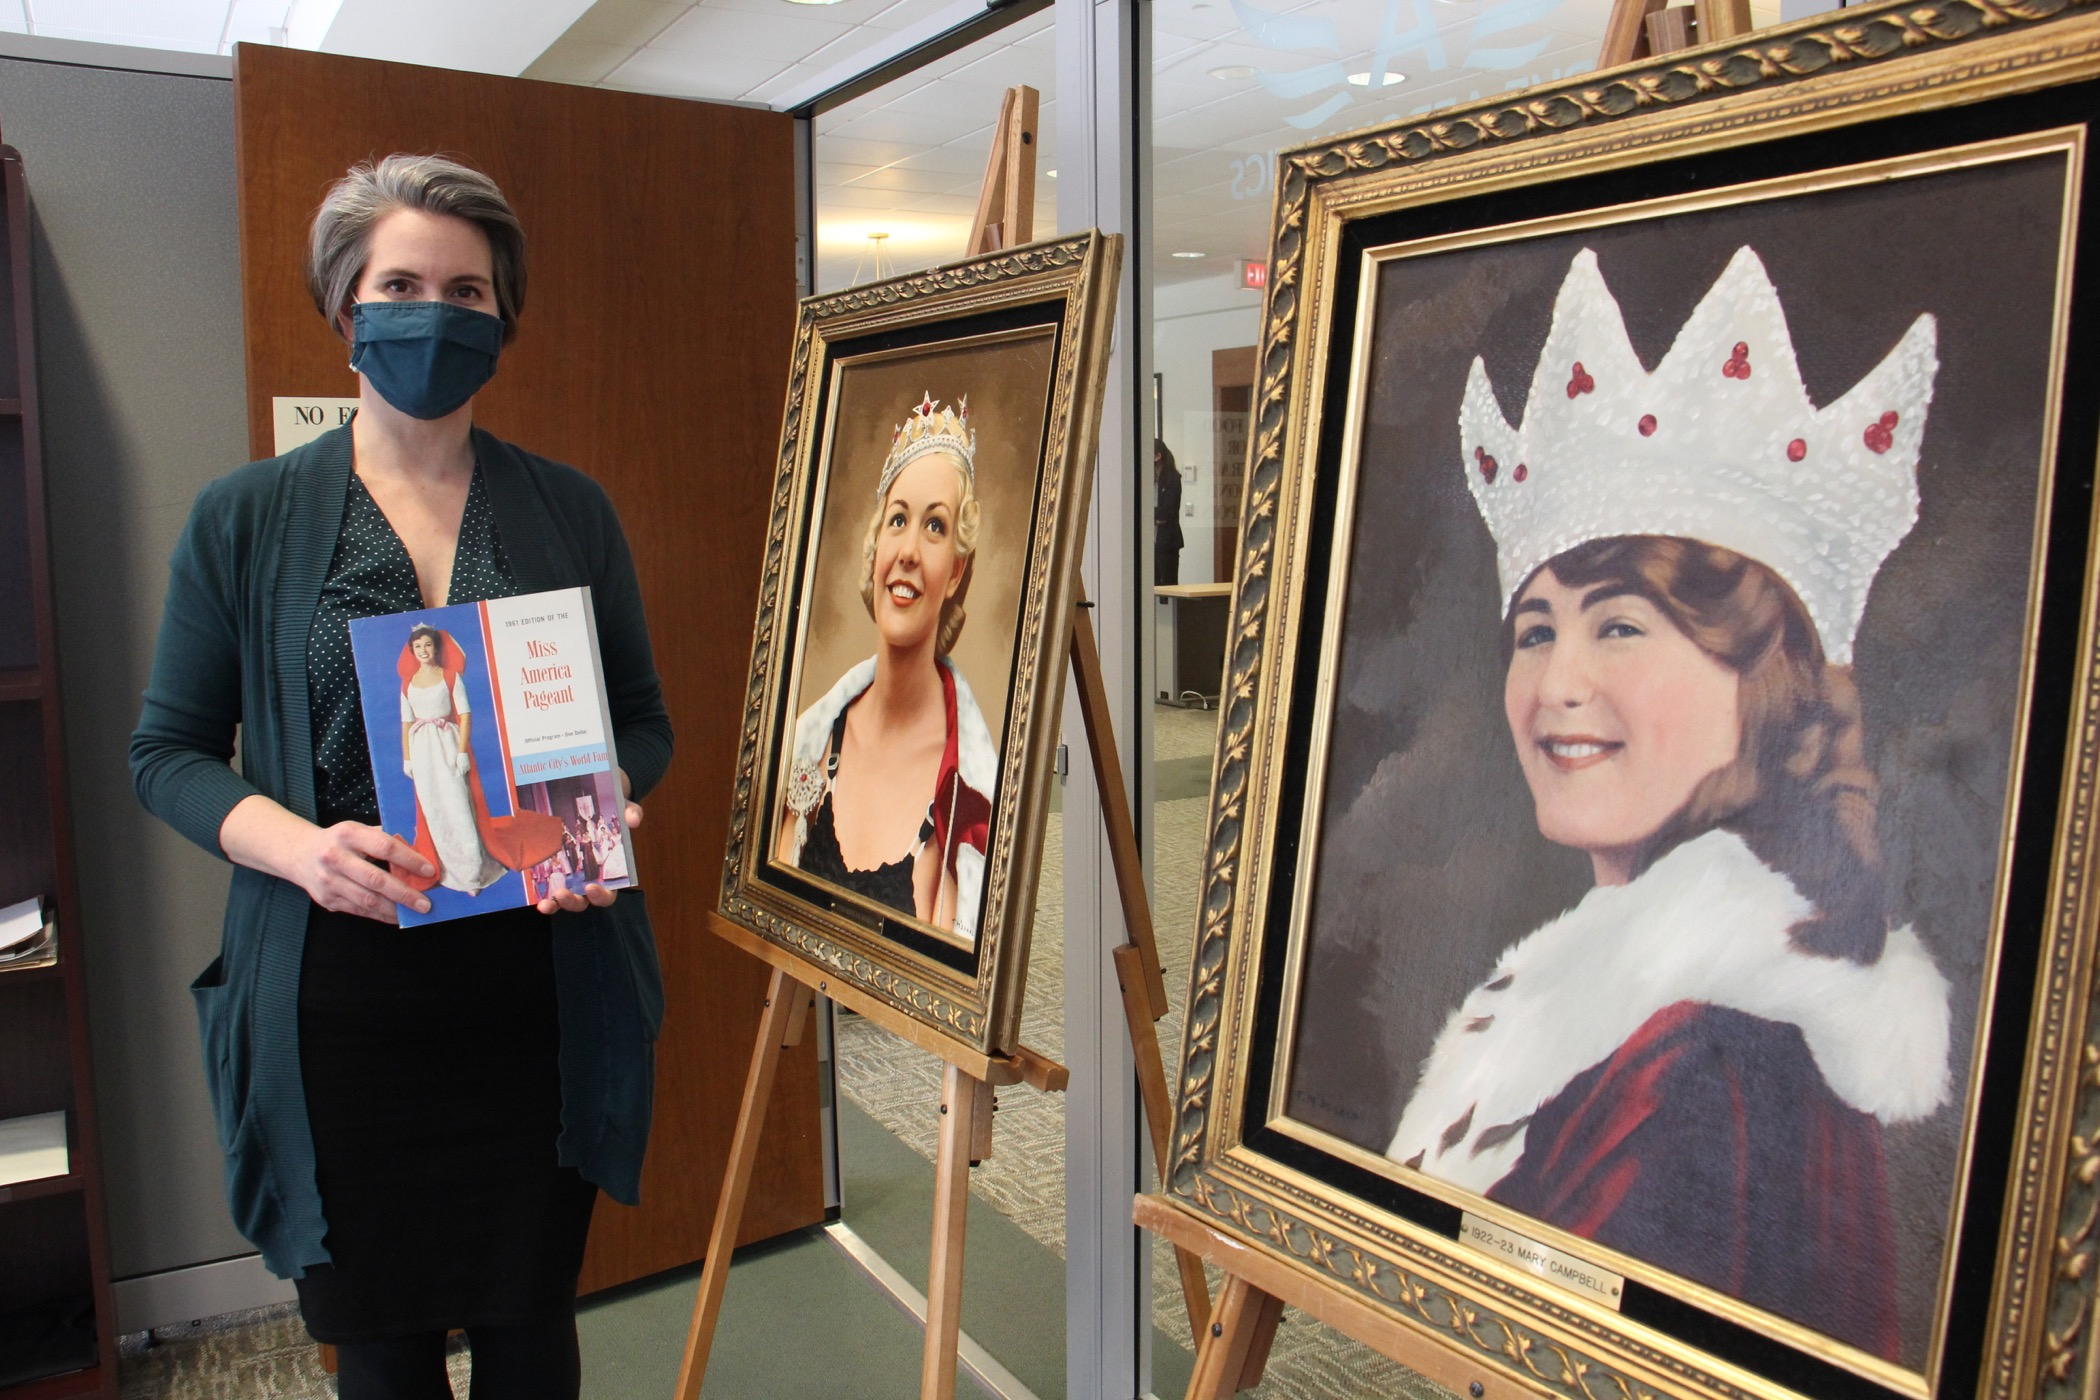 Dr. Katherine Turner stands among items tied to the Miss America Organization